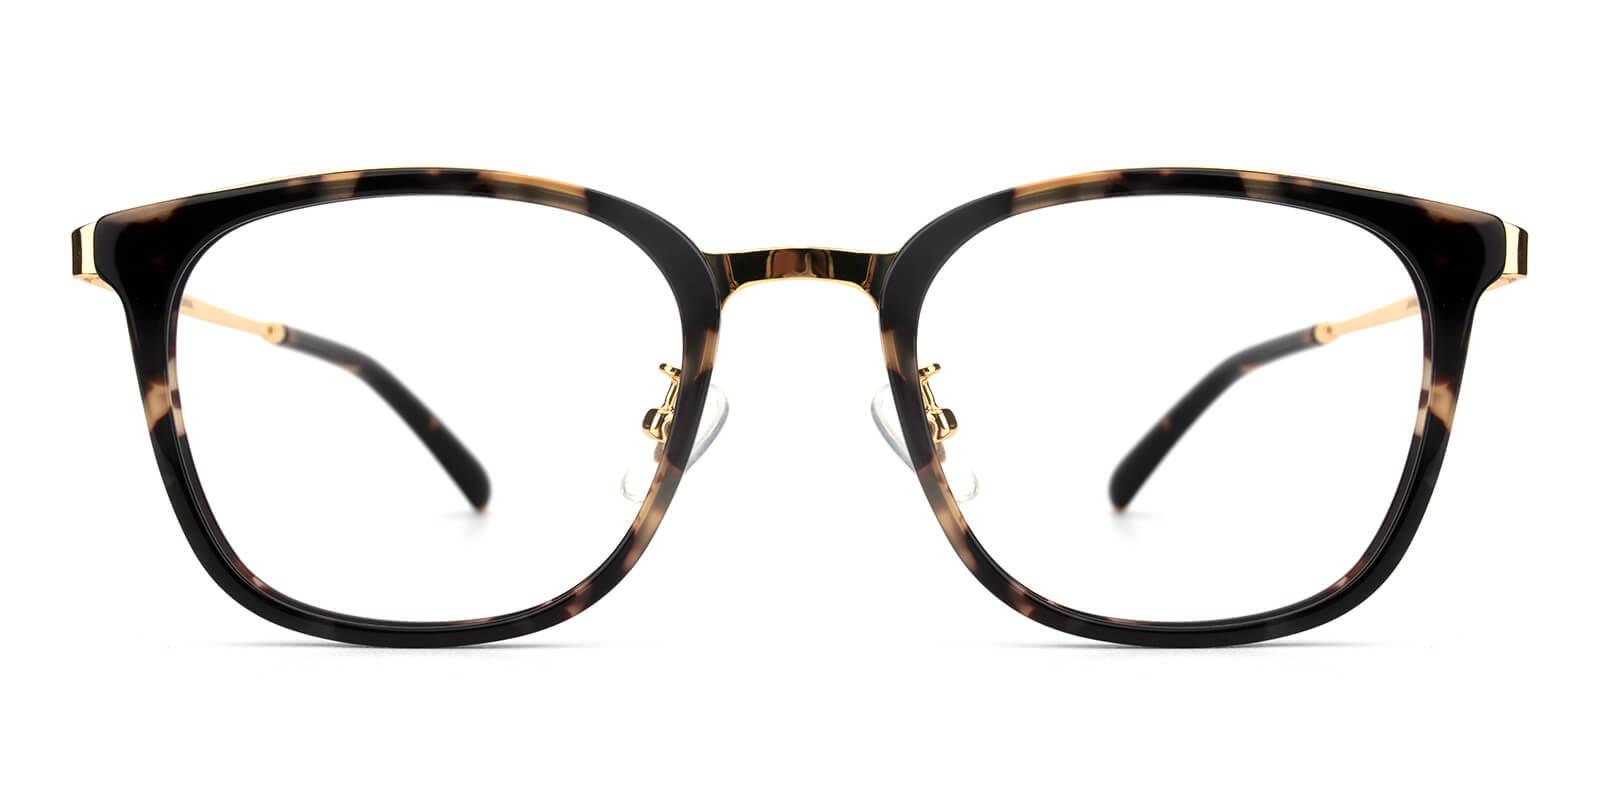 Keronito-Leopard-Square-Metal-Eyeglasses-additional2